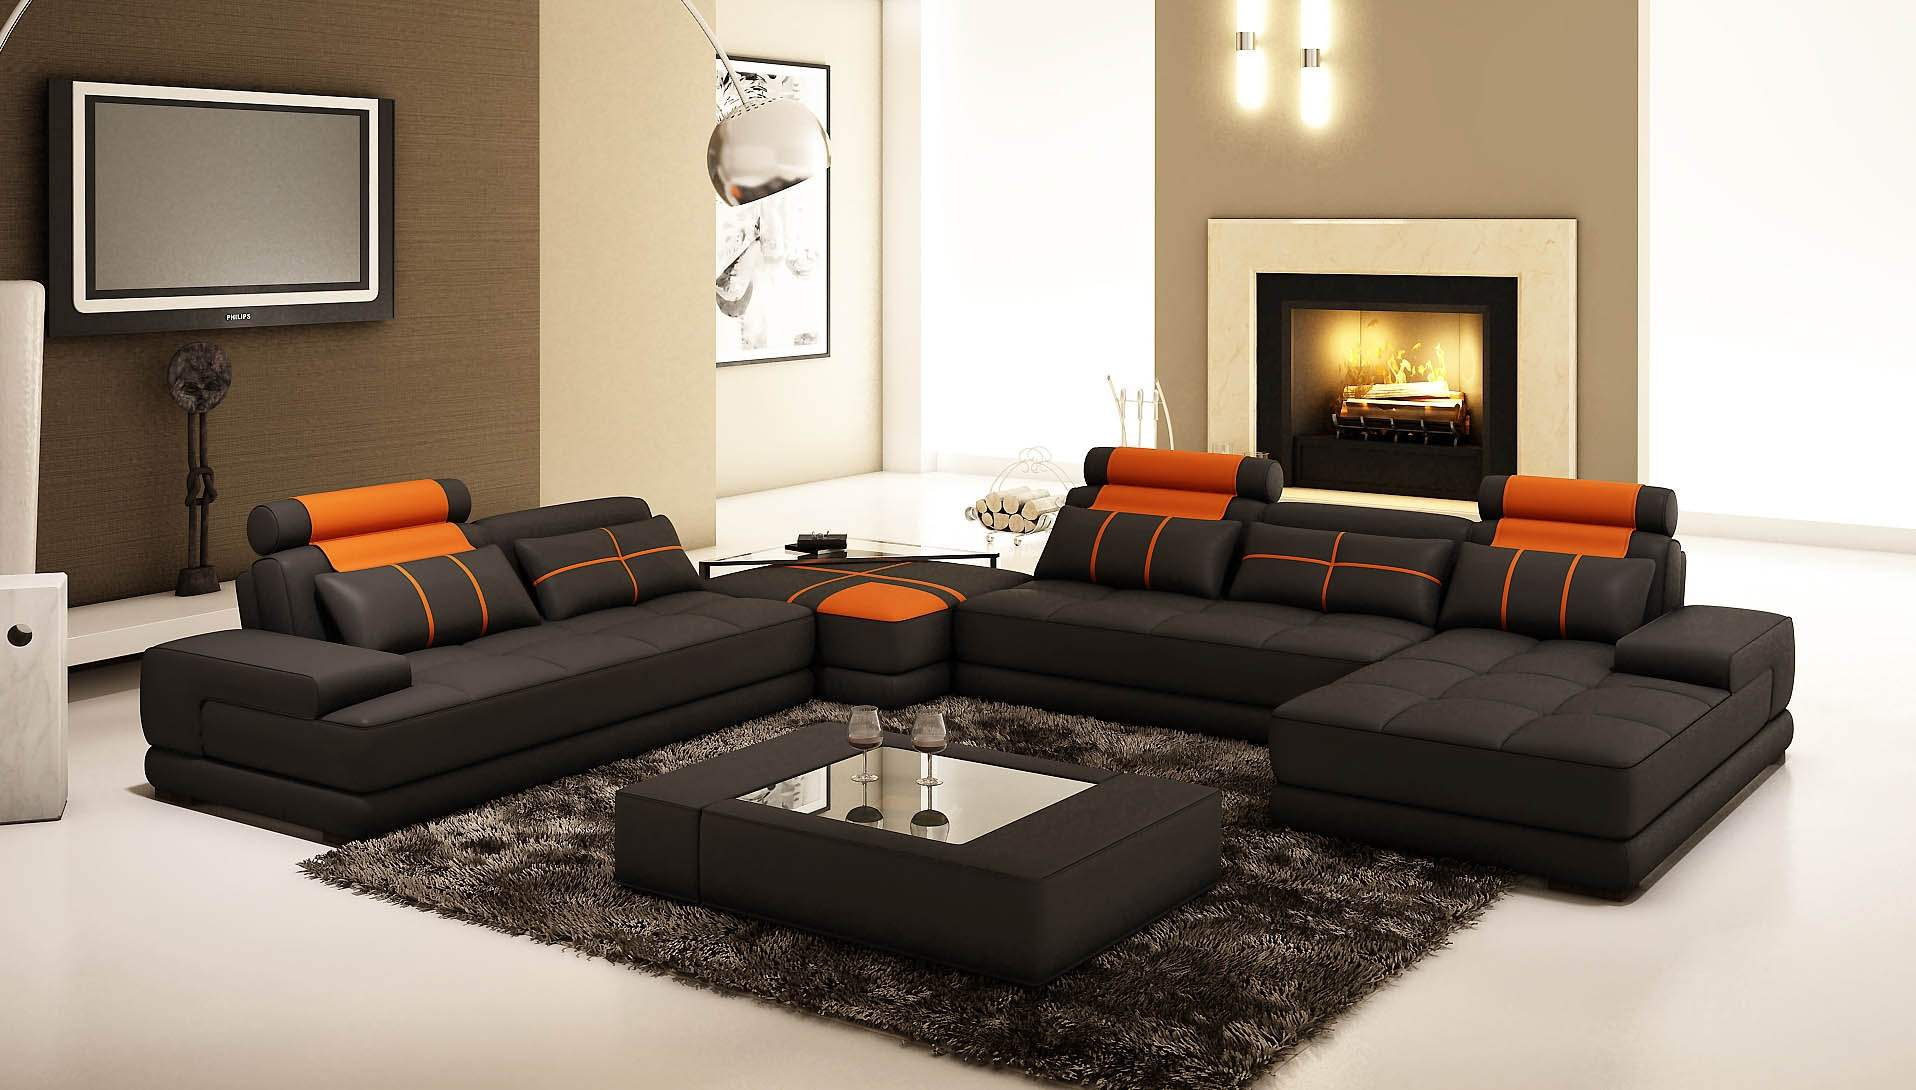 Deco in paris canape d angle panoramique cuir noir et for 7 seater living room